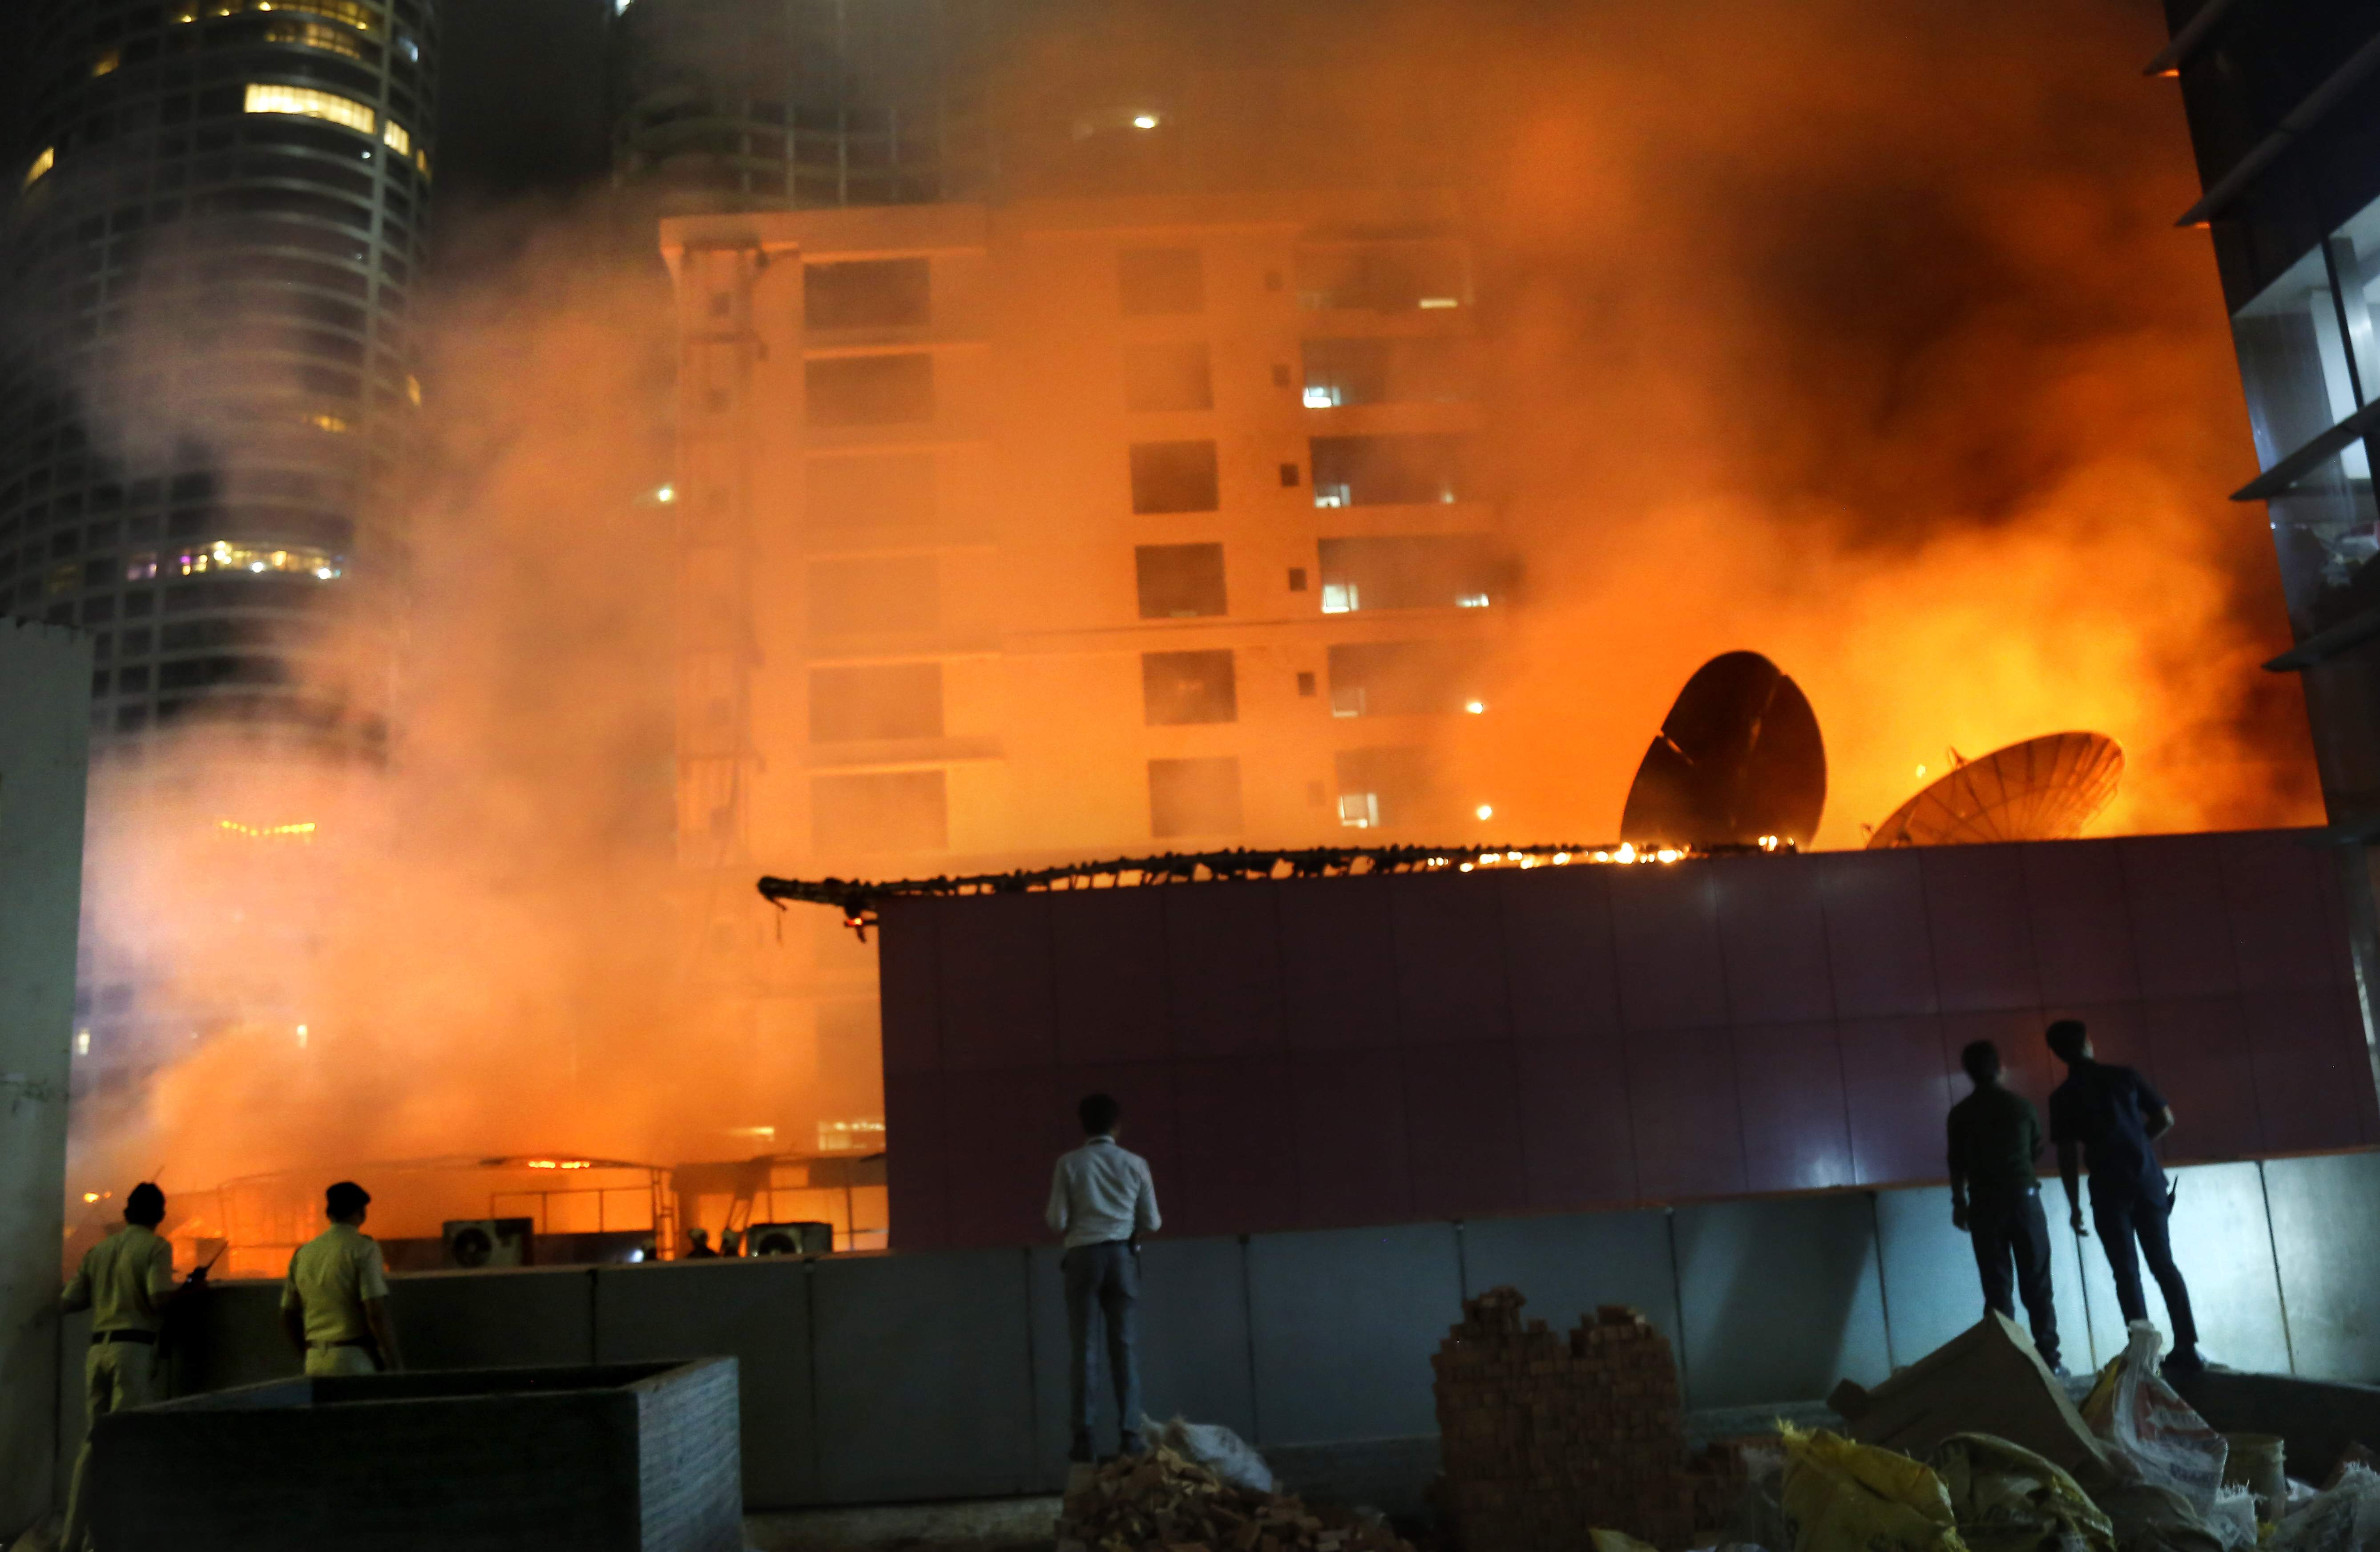 The Kamala Mills Fire, and Other Accidents Waiting to Happen